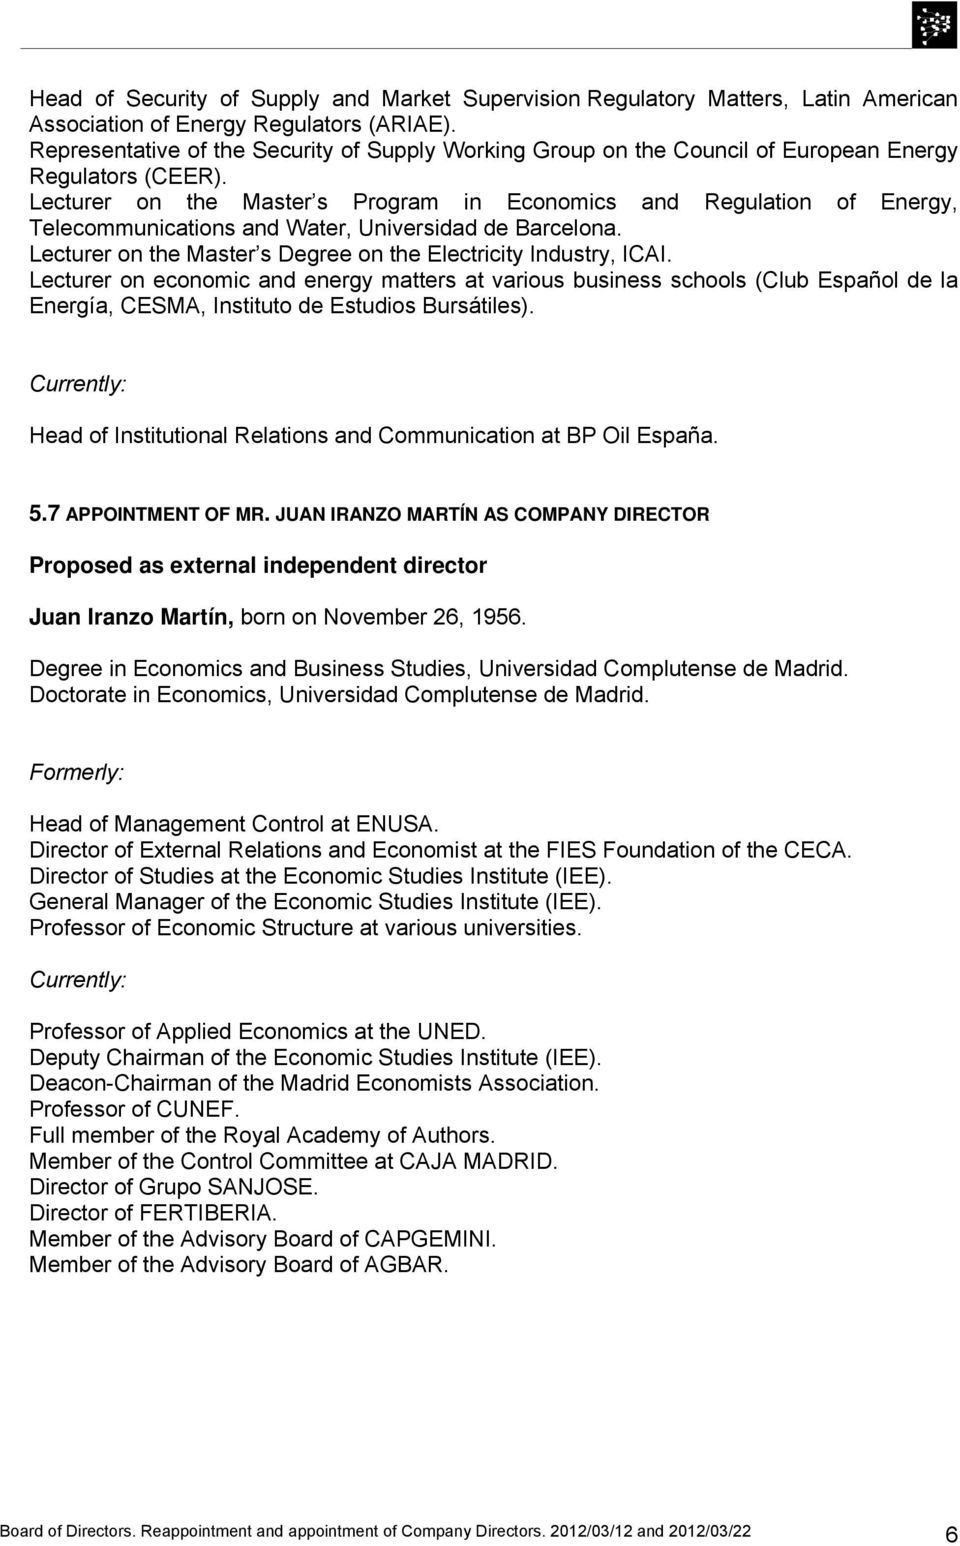 Lecturer on the Master s Program in Economics and Regulation of Energy, Telecommunications and Water, Universidad de Barcelona. Lecturer on the Master s Degree on the Electricity Industry, ICAI.